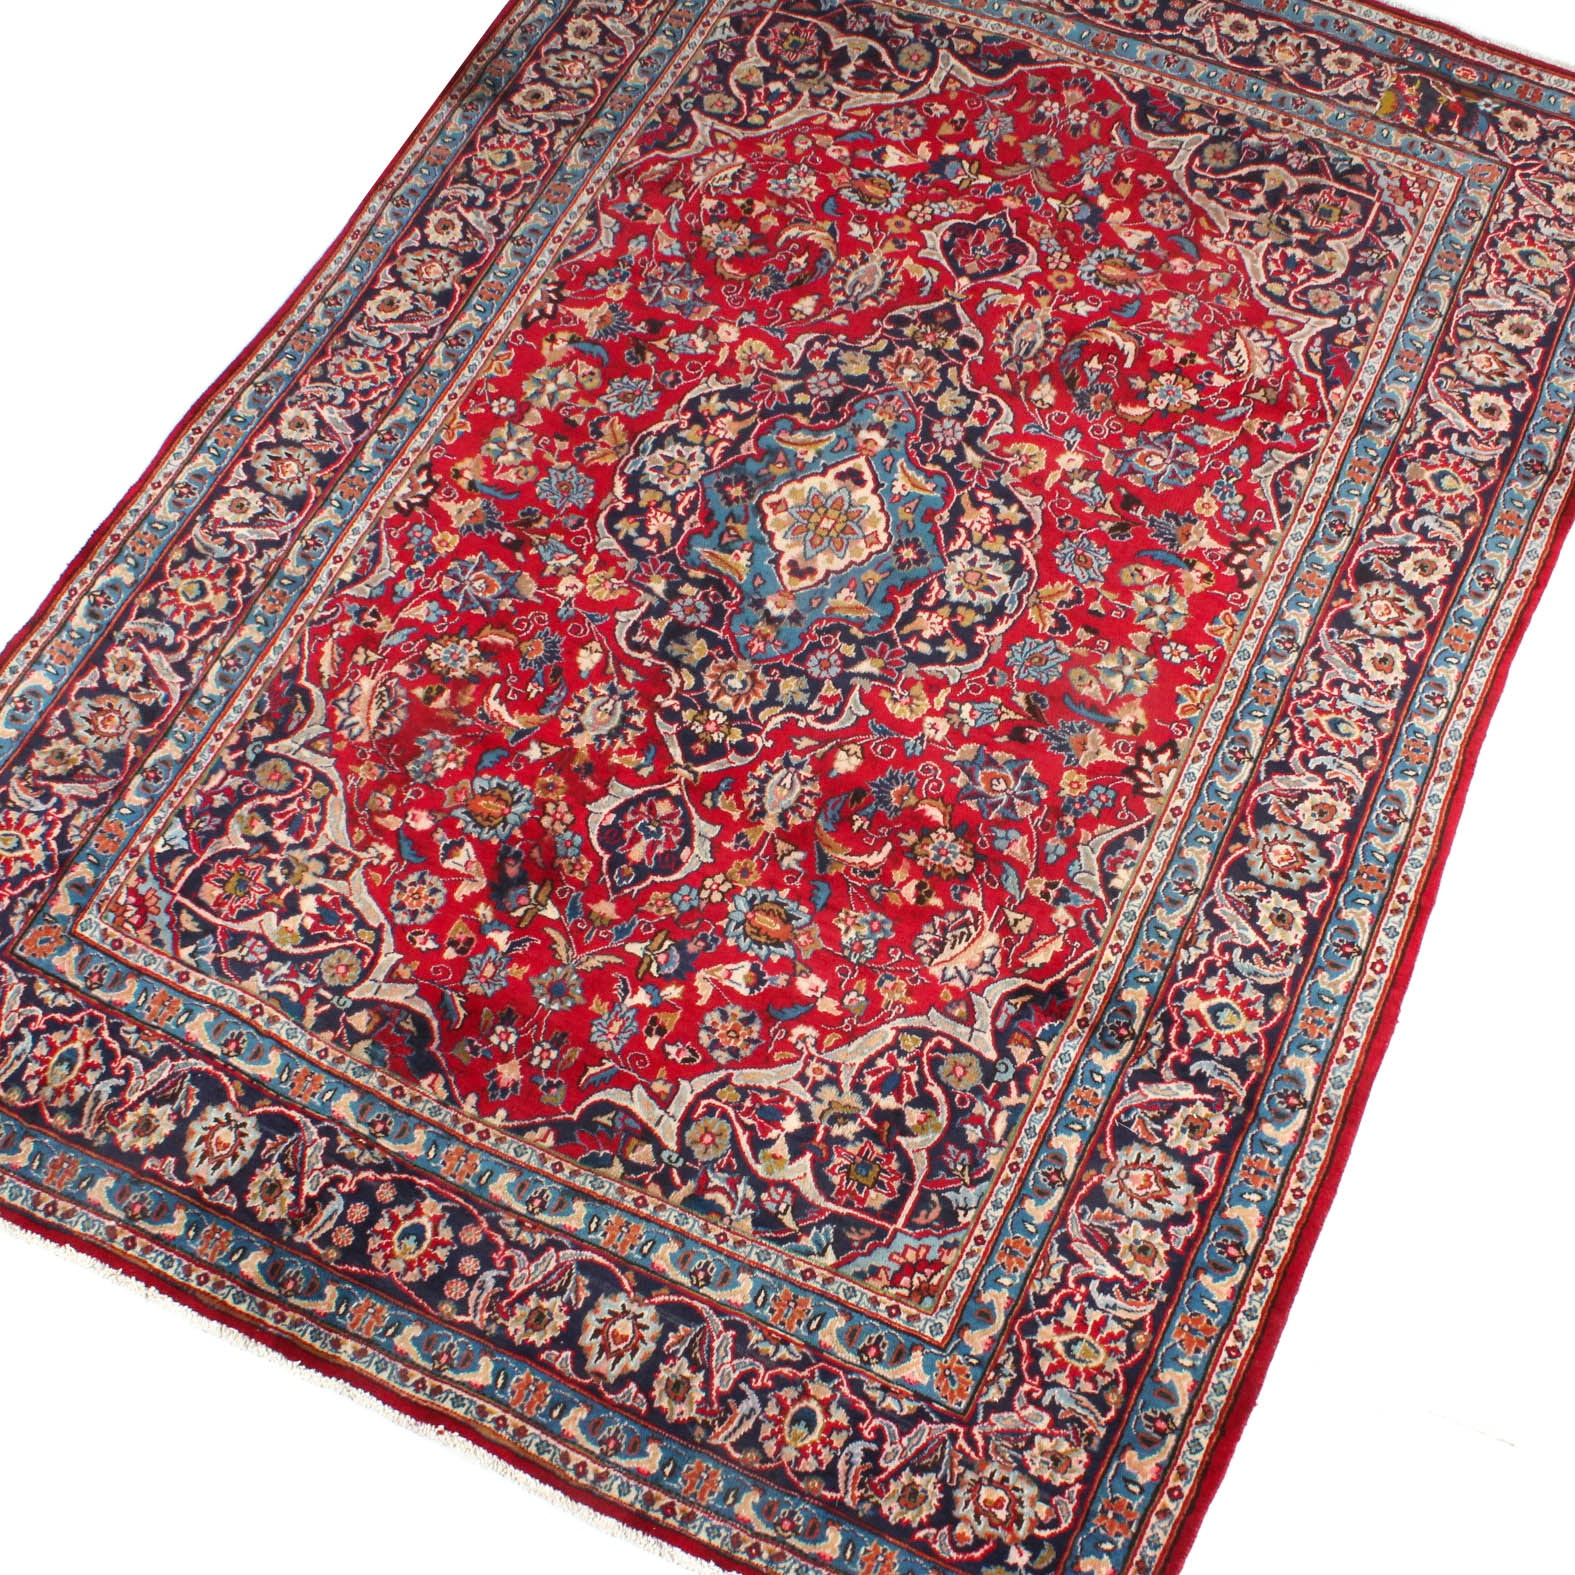 Hand Knotted Semi-Antique Persian Kashan Area Rug